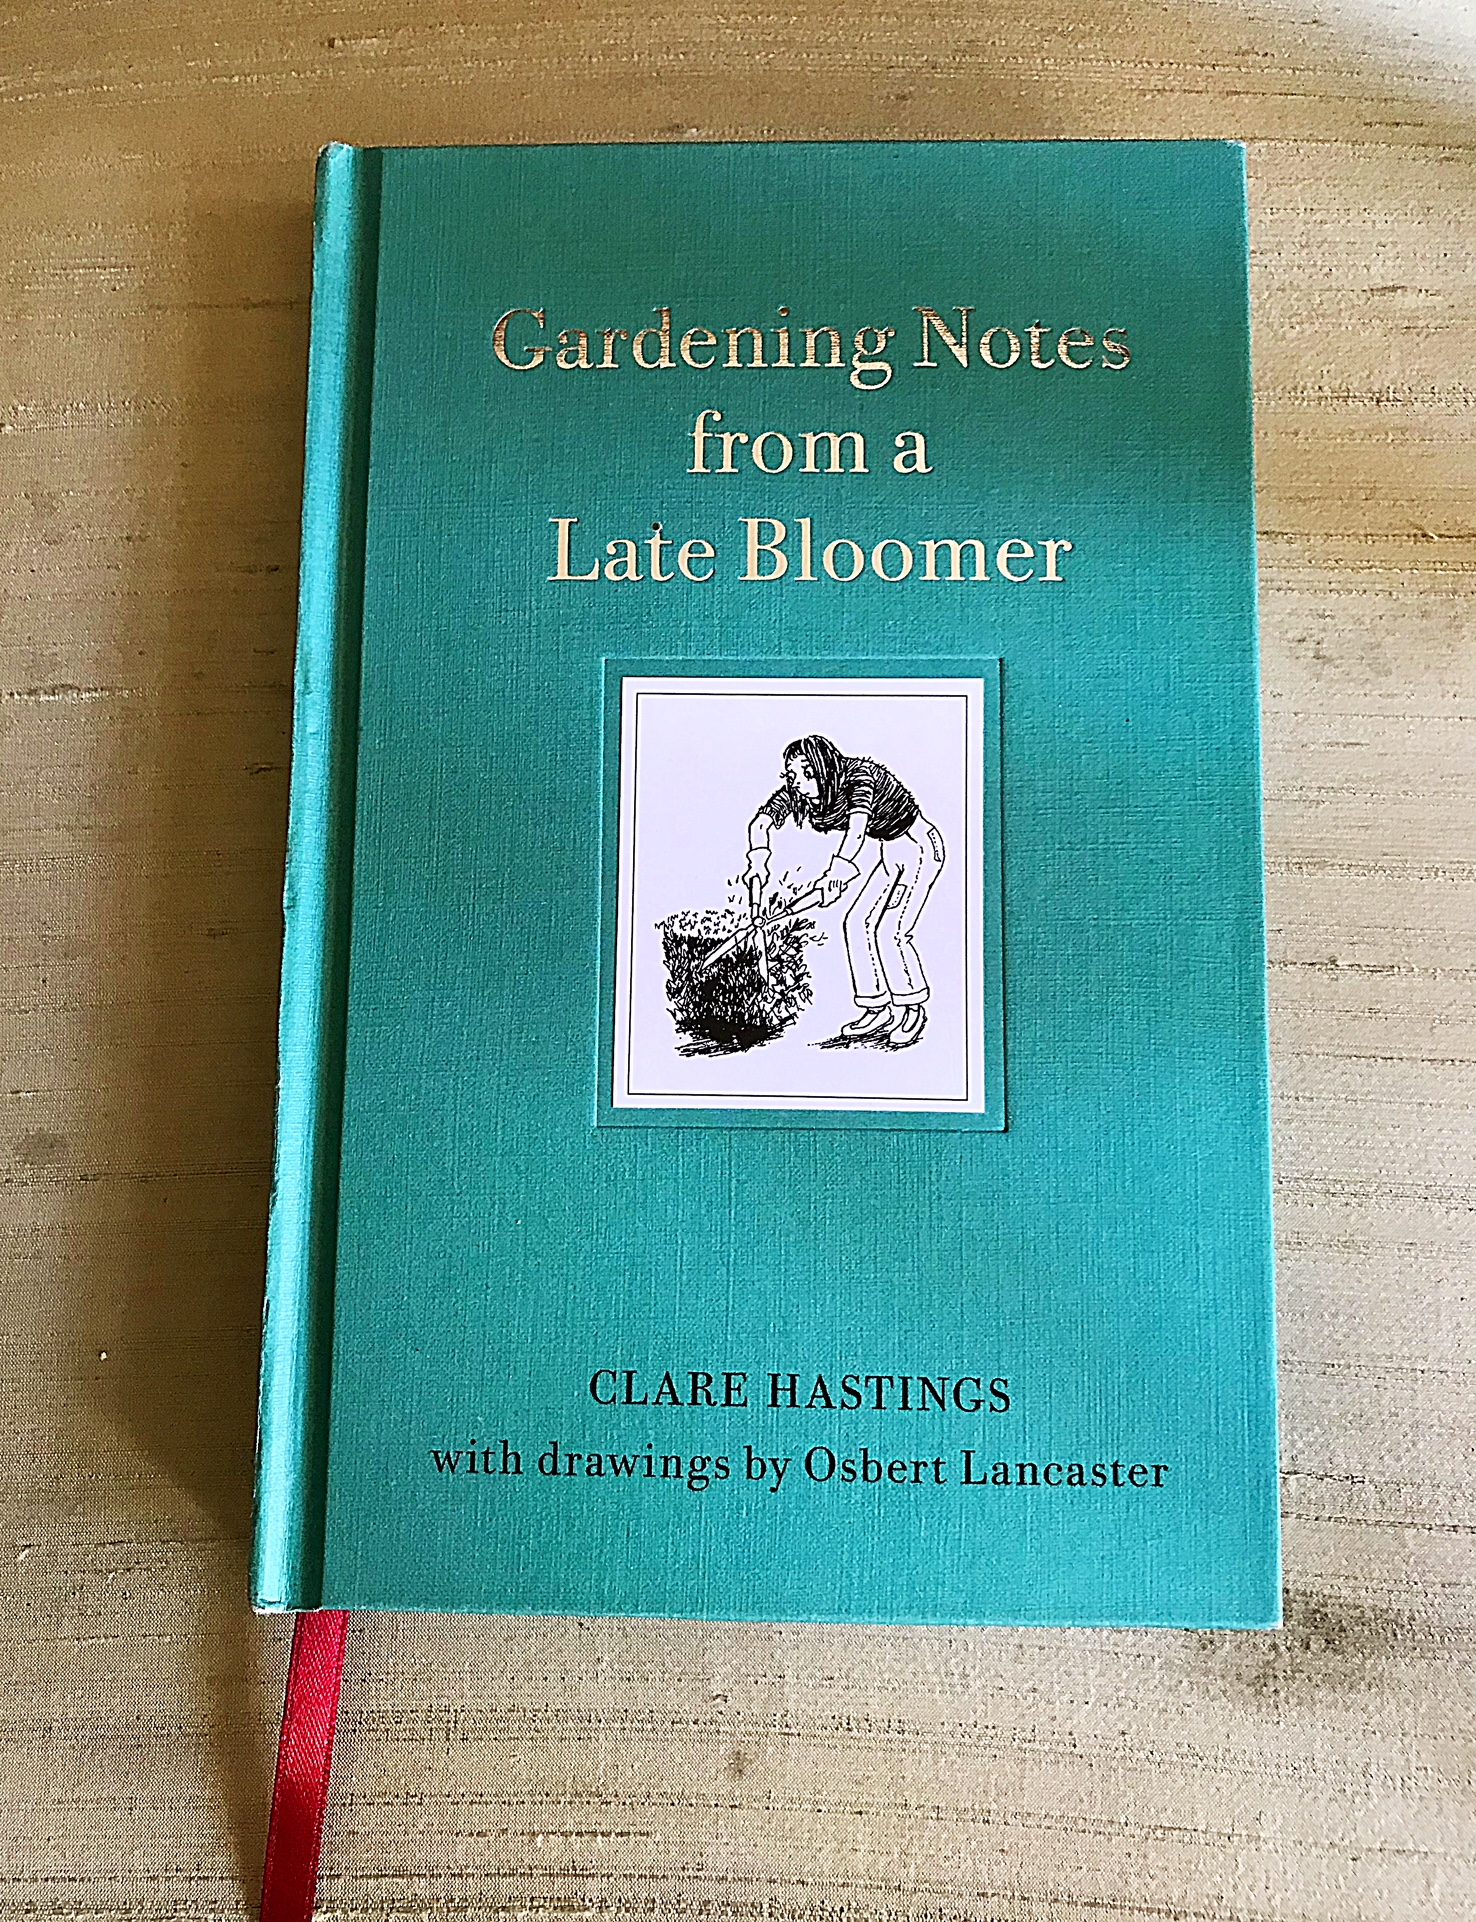 gardening-notes-from-a-late-bloomer.JPG